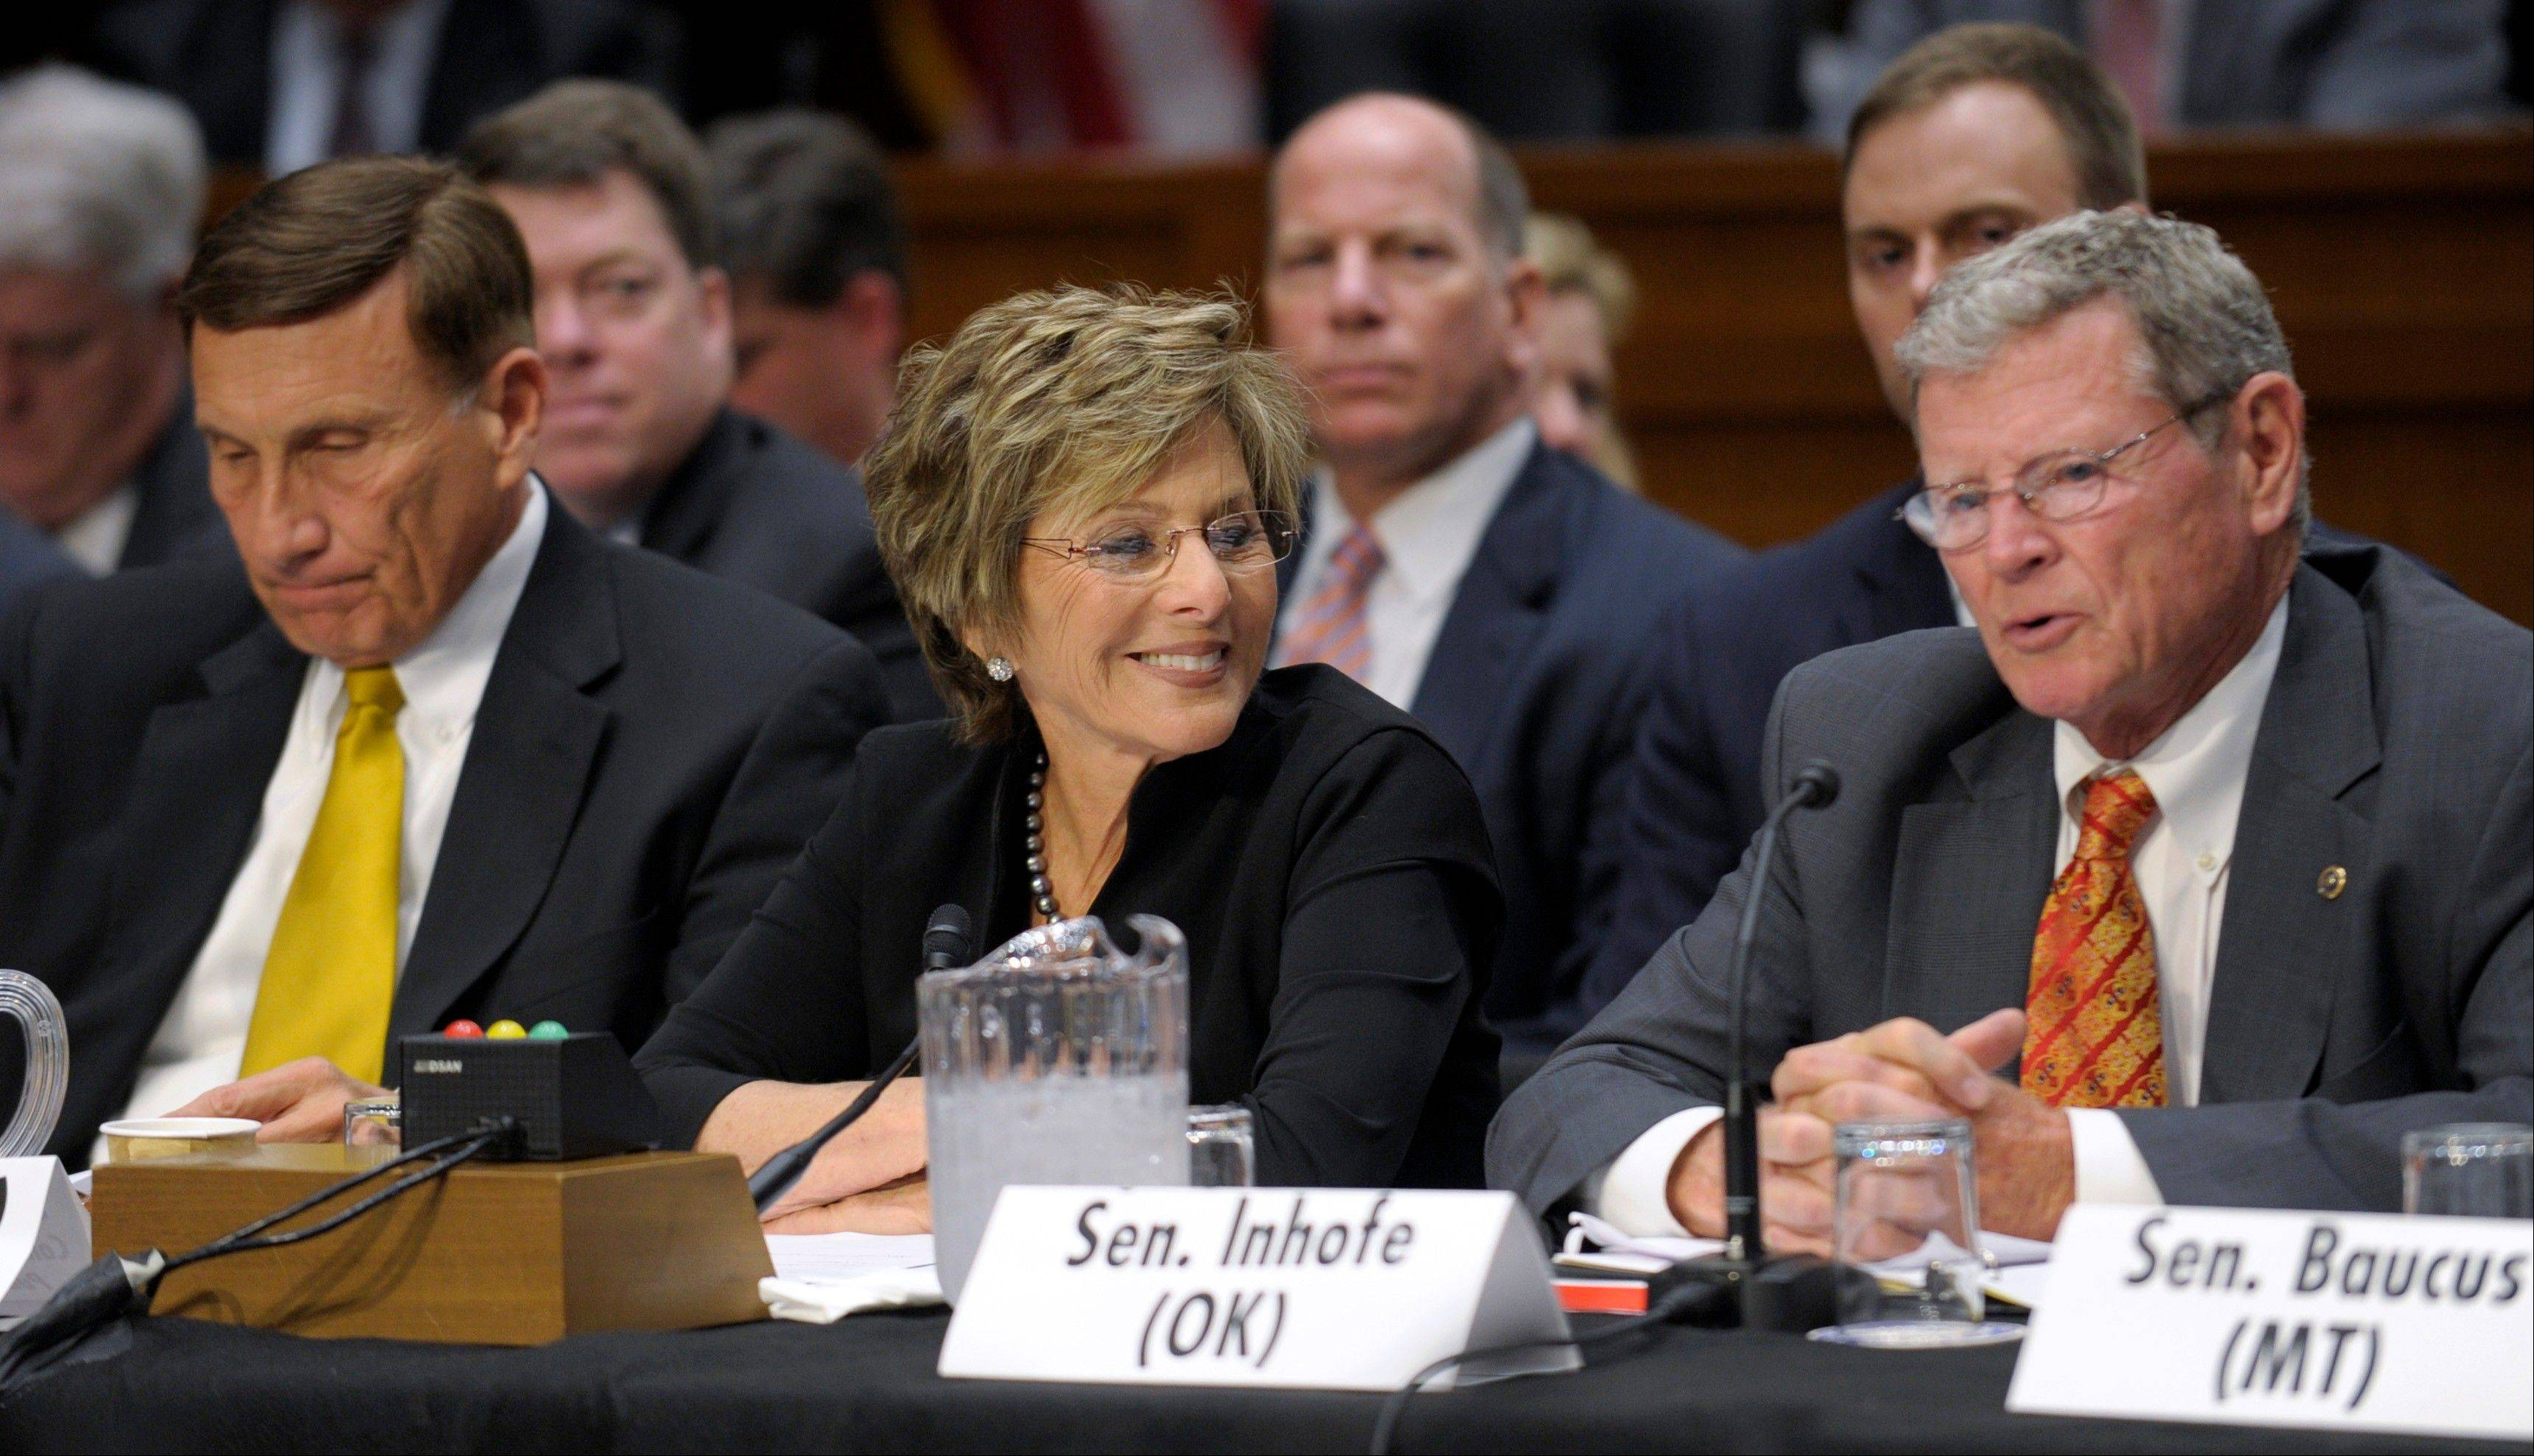 Associated Press/May 8, 2012Sen. Barbara Boxer, D-Calif., center, and Rep. John Mica, R- Fla., left, listen as Sen. James Inhofe, R-Okla., right, speaks during the first meeting of the House and Senate conference on the transportation bill on Capitol Hill in Washington.